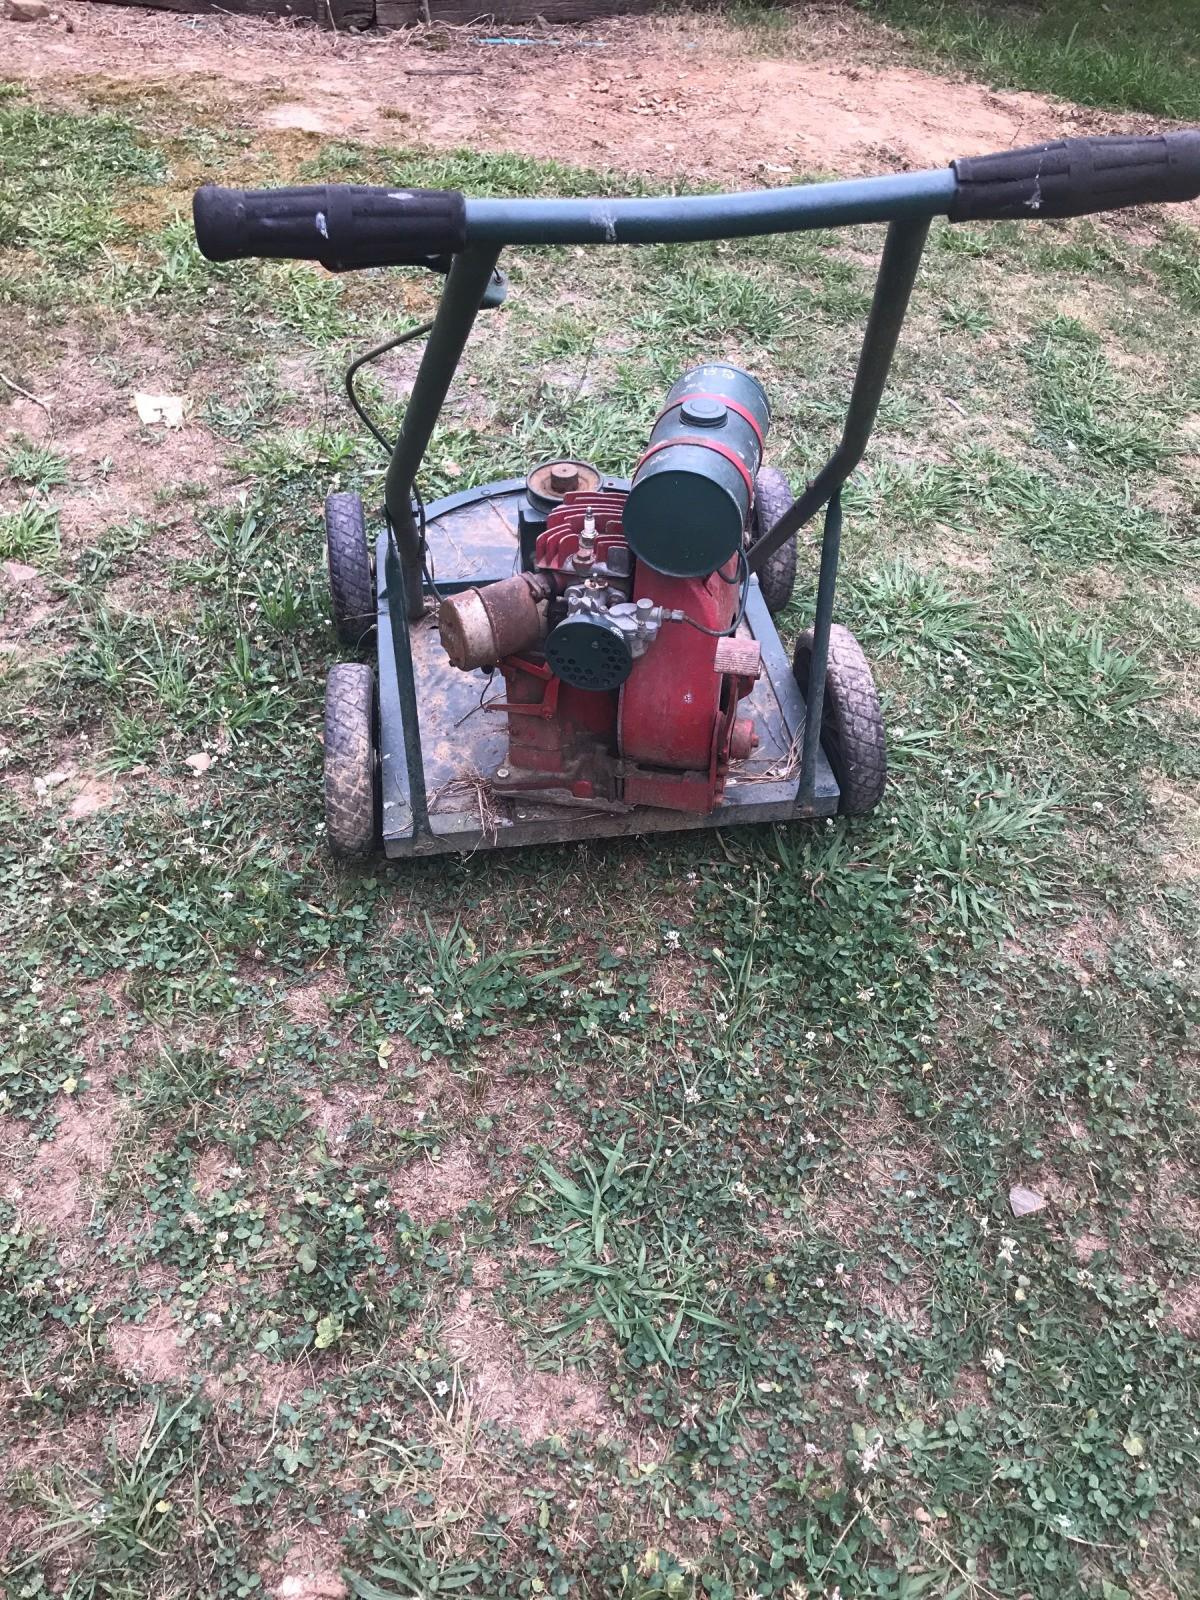 Finding the Value of Antique Lawn Mowers | ThriftyFun